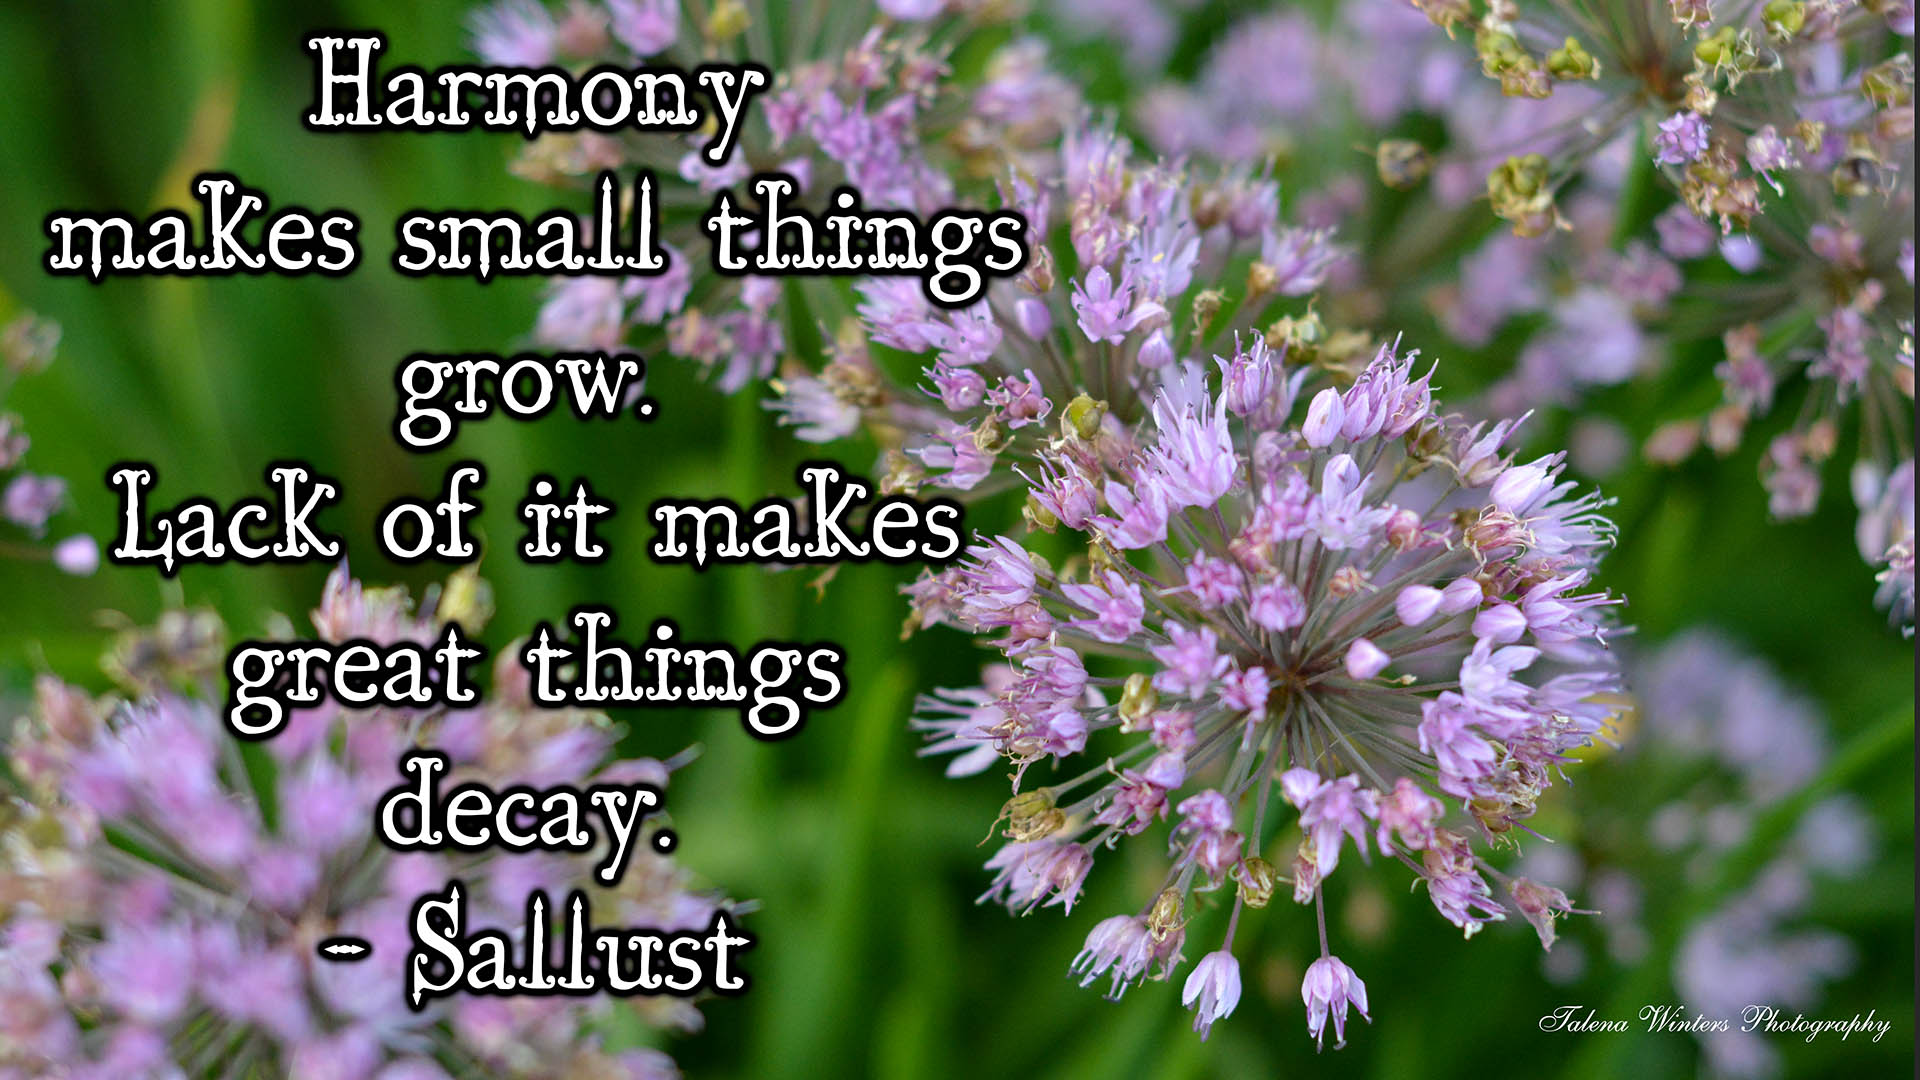 """Harmony makes small things grow. Lack of it makes great things decay."" - Sallust. Desktop wallpaper, 1920 x 1080 resolution, onion flowers. More free wallpapers  here ."